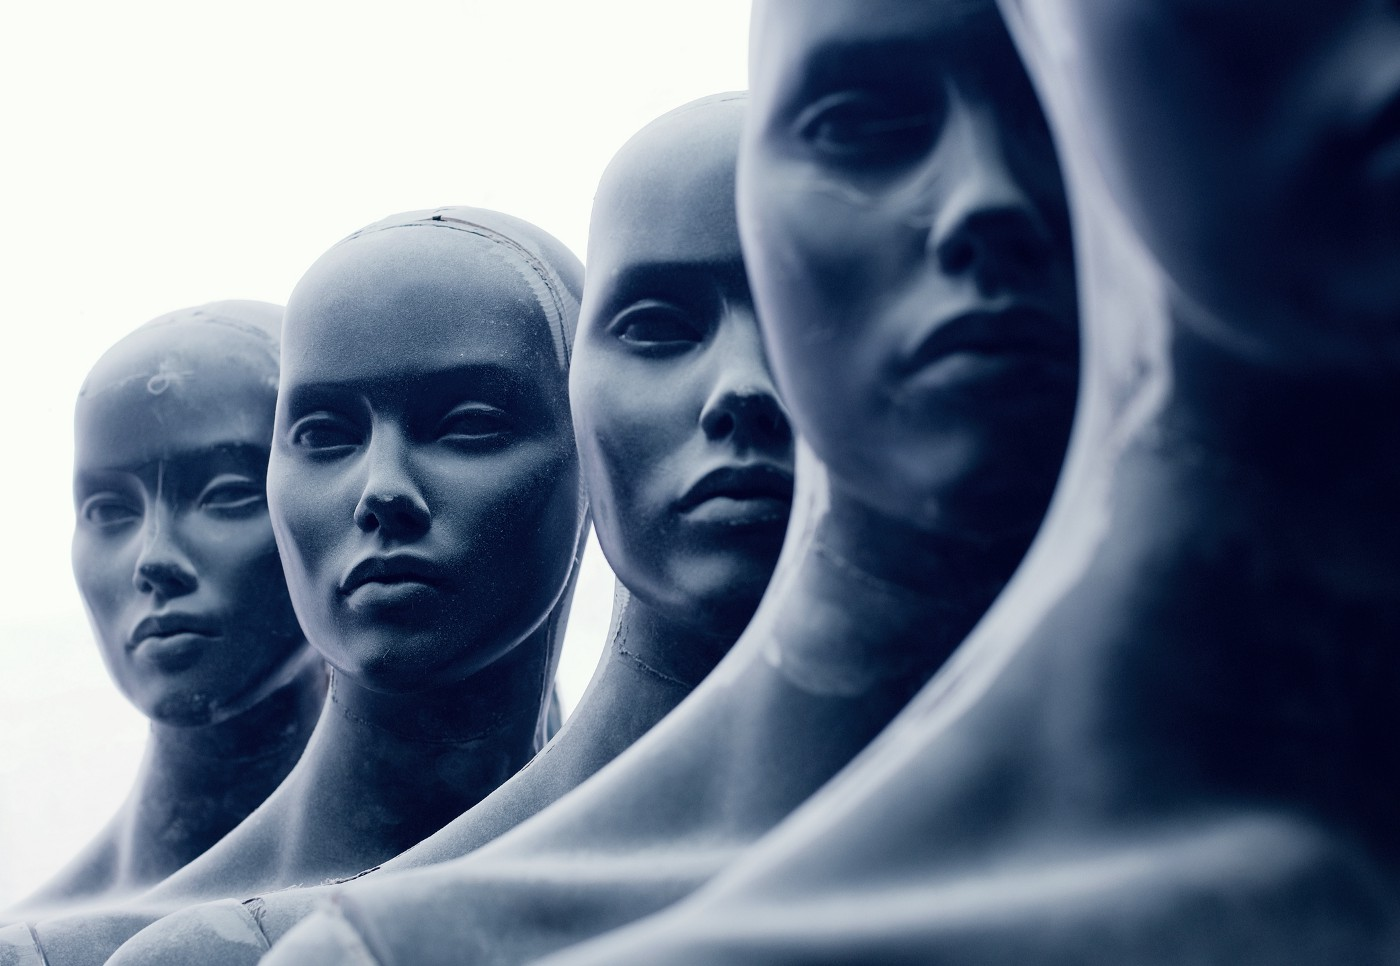 A photo of five sculpture-like human faces.